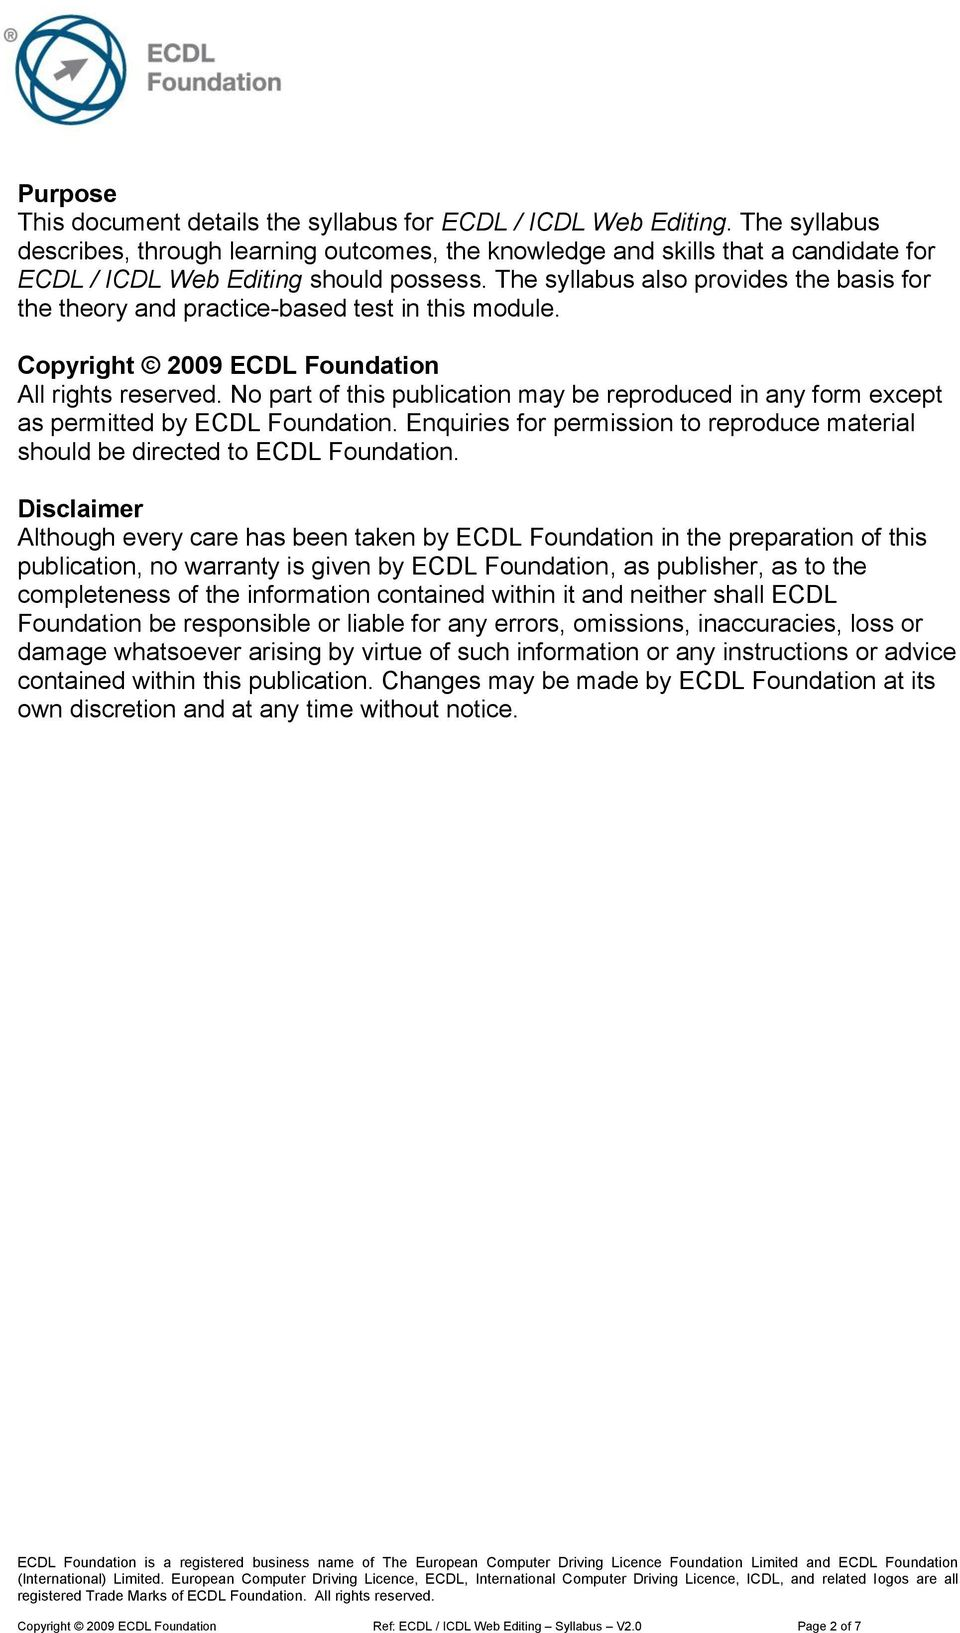 The syllabus also provides the basis for the theory and practice-based test in this module. Copyright 2009 ECDL Foundation All rights reserved.